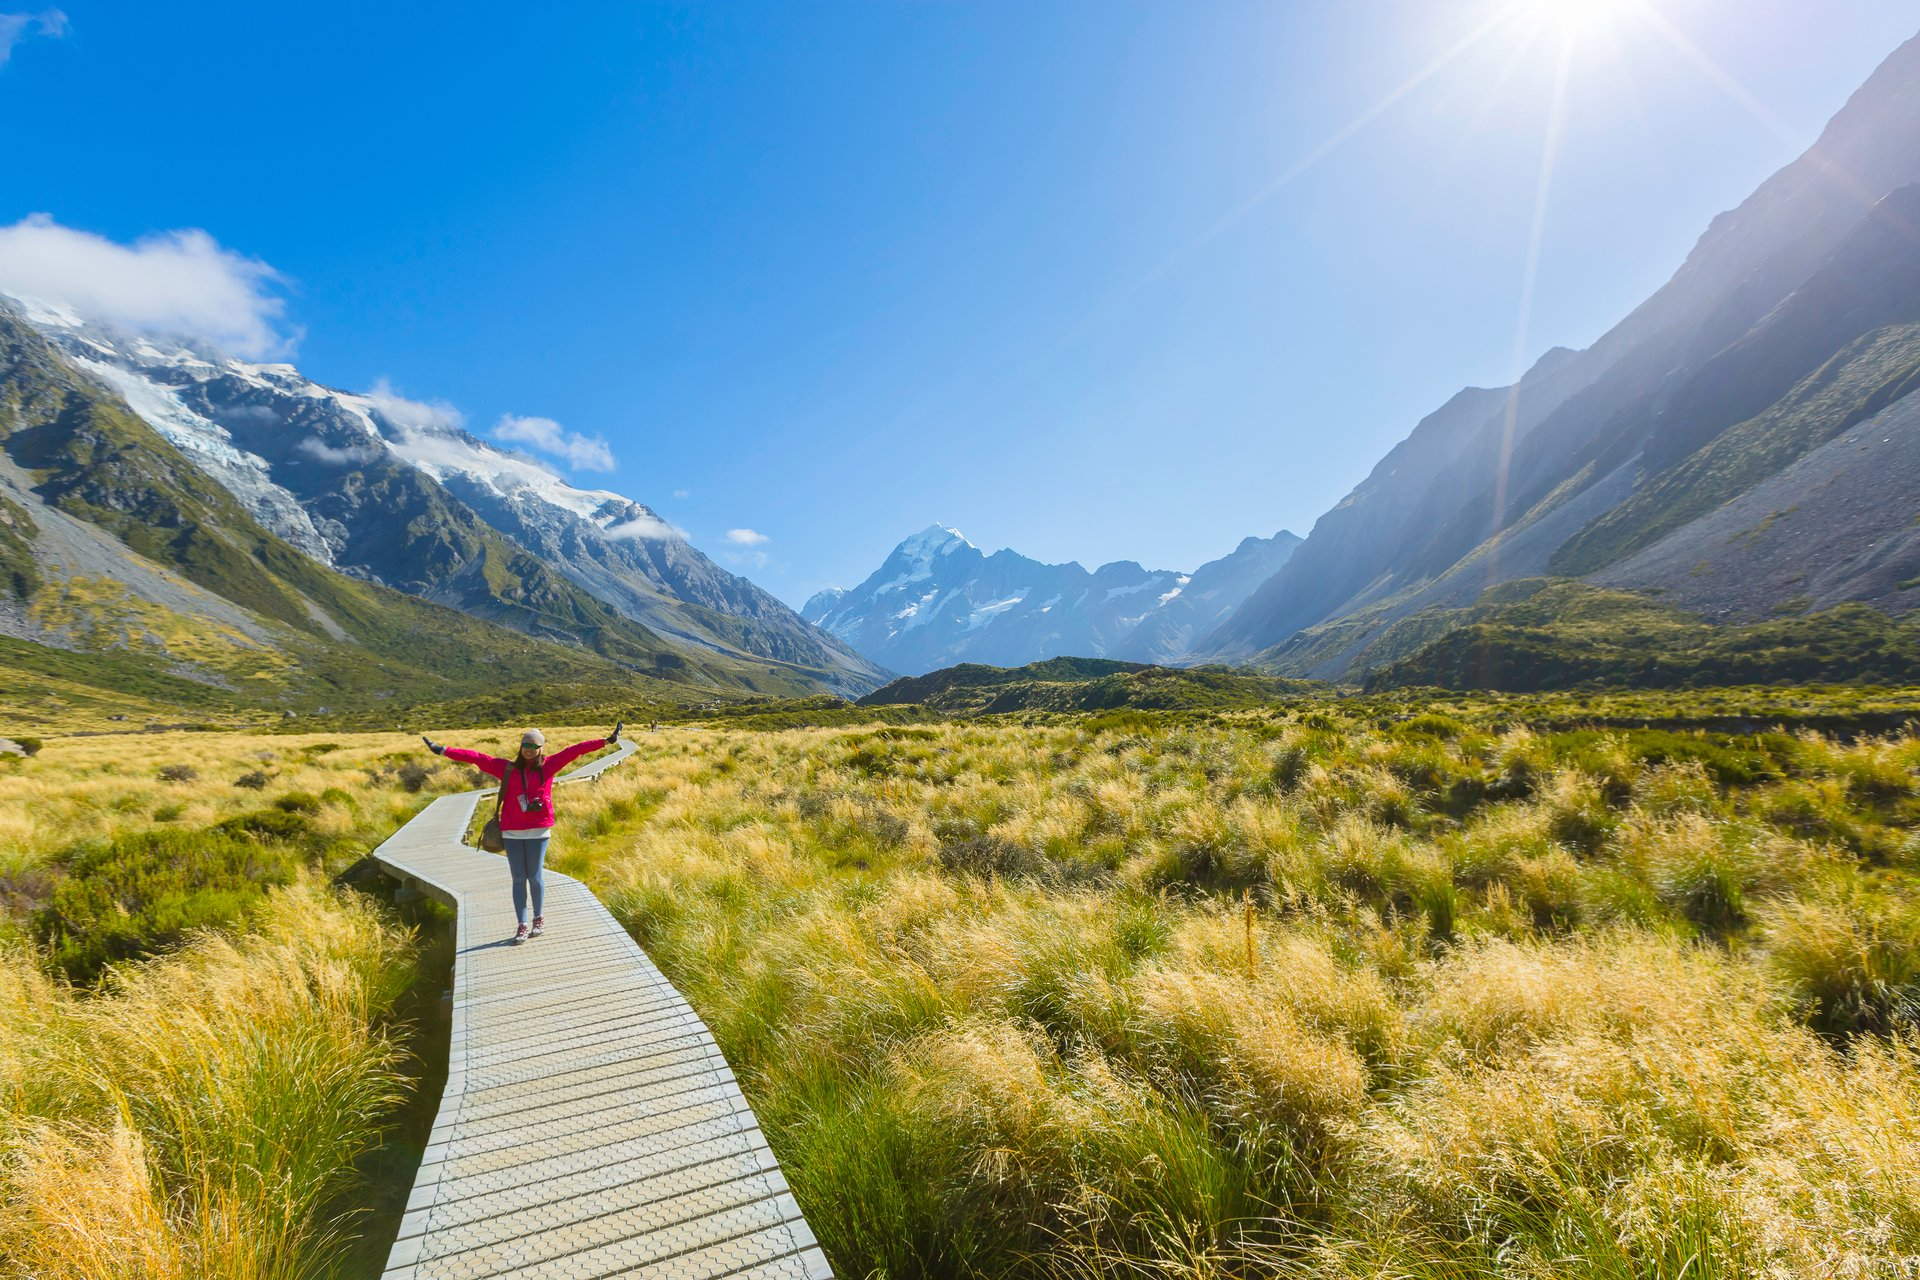 A woman hikes through Aoraki/Mount Cook National Park in New Zealand